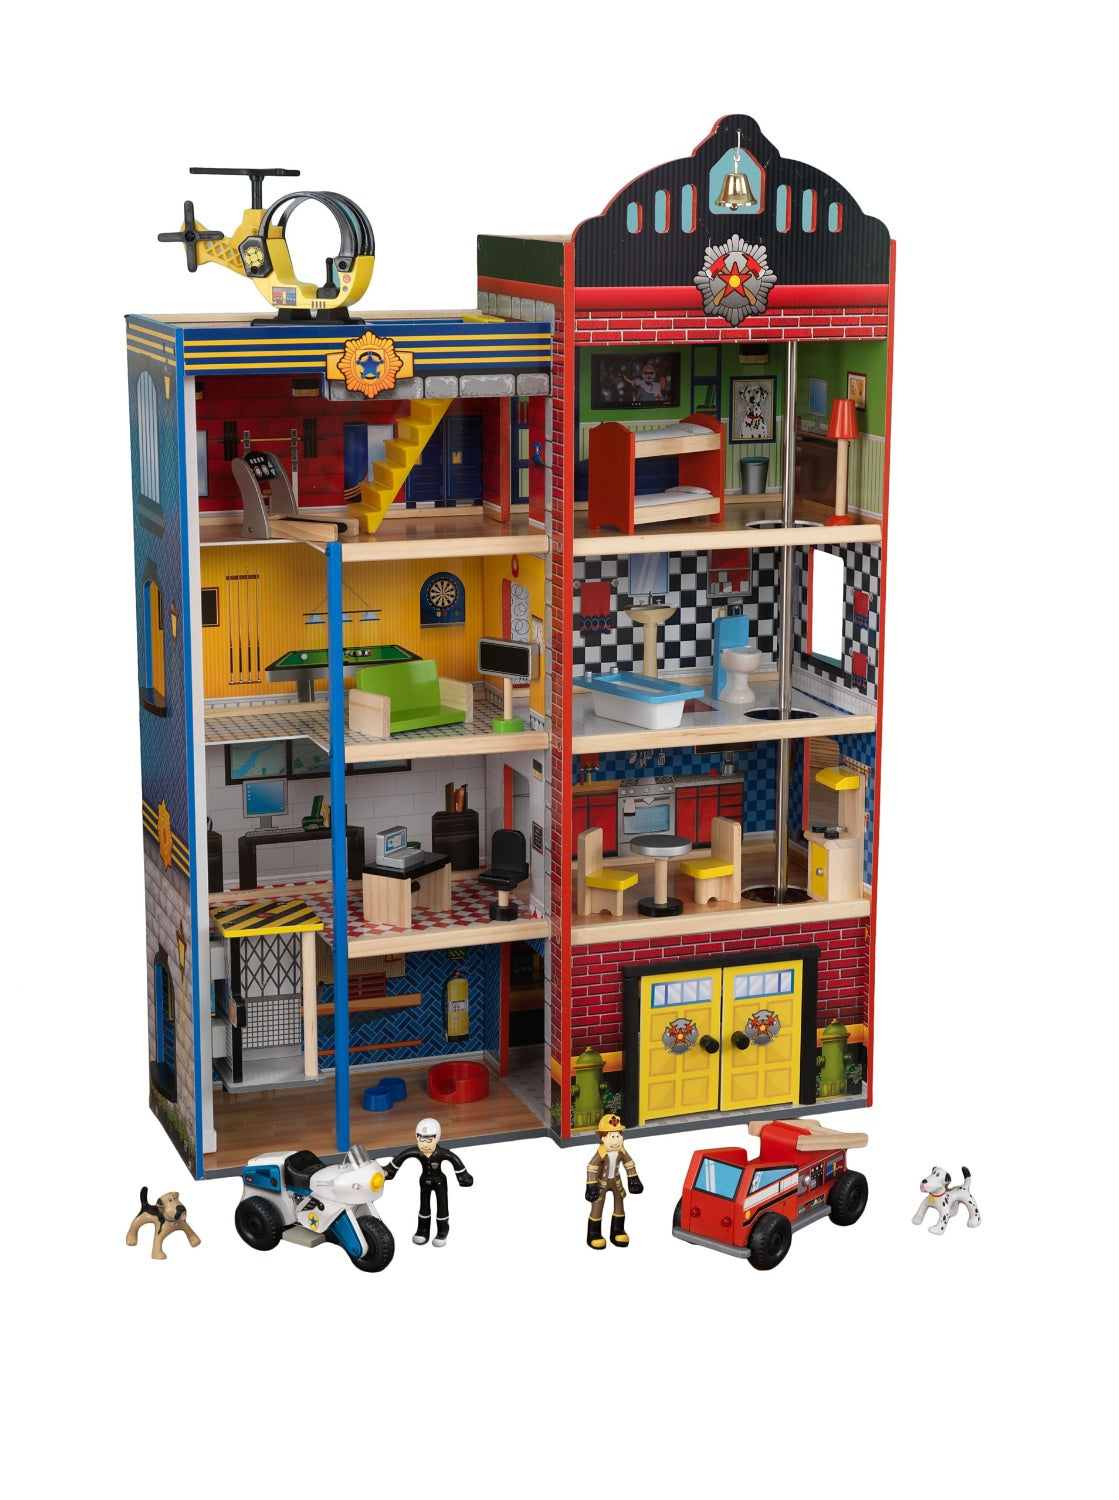 Hometown Heroes Wooden Play Set 24 Pieces, Makes Siren Sounds! Lights Up!